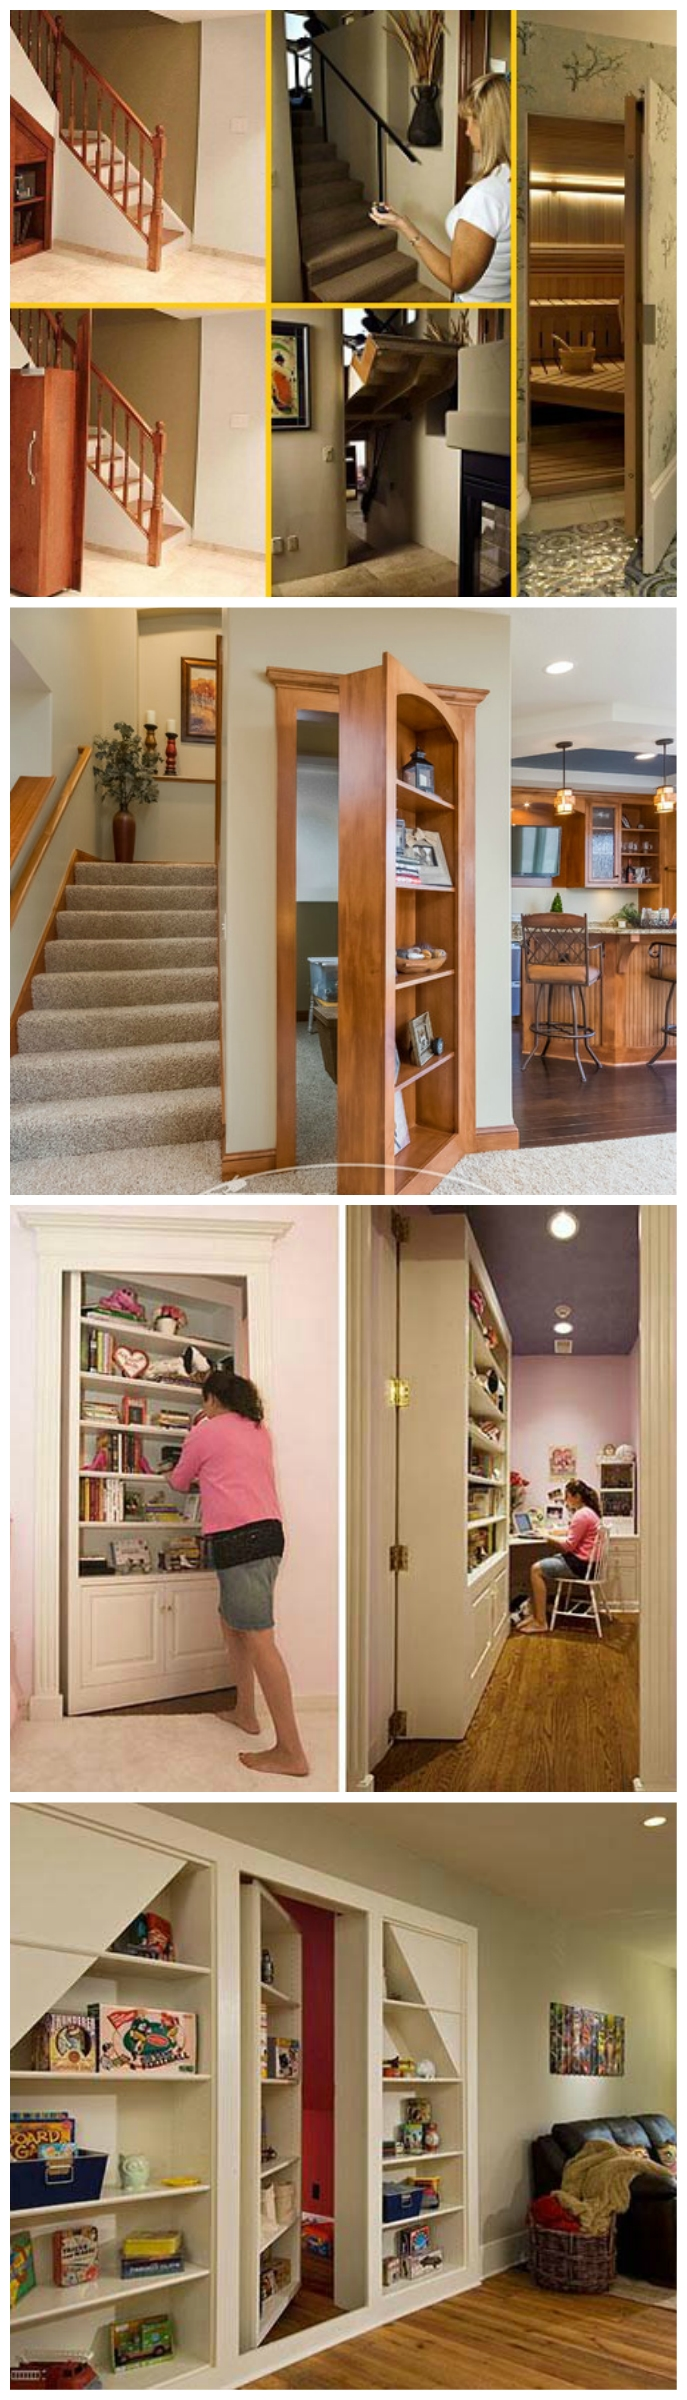 15 hidden room ideas for your home unter der treppe und schuhregal pinterest unter der. Black Bedroom Furniture Sets. Home Design Ideas